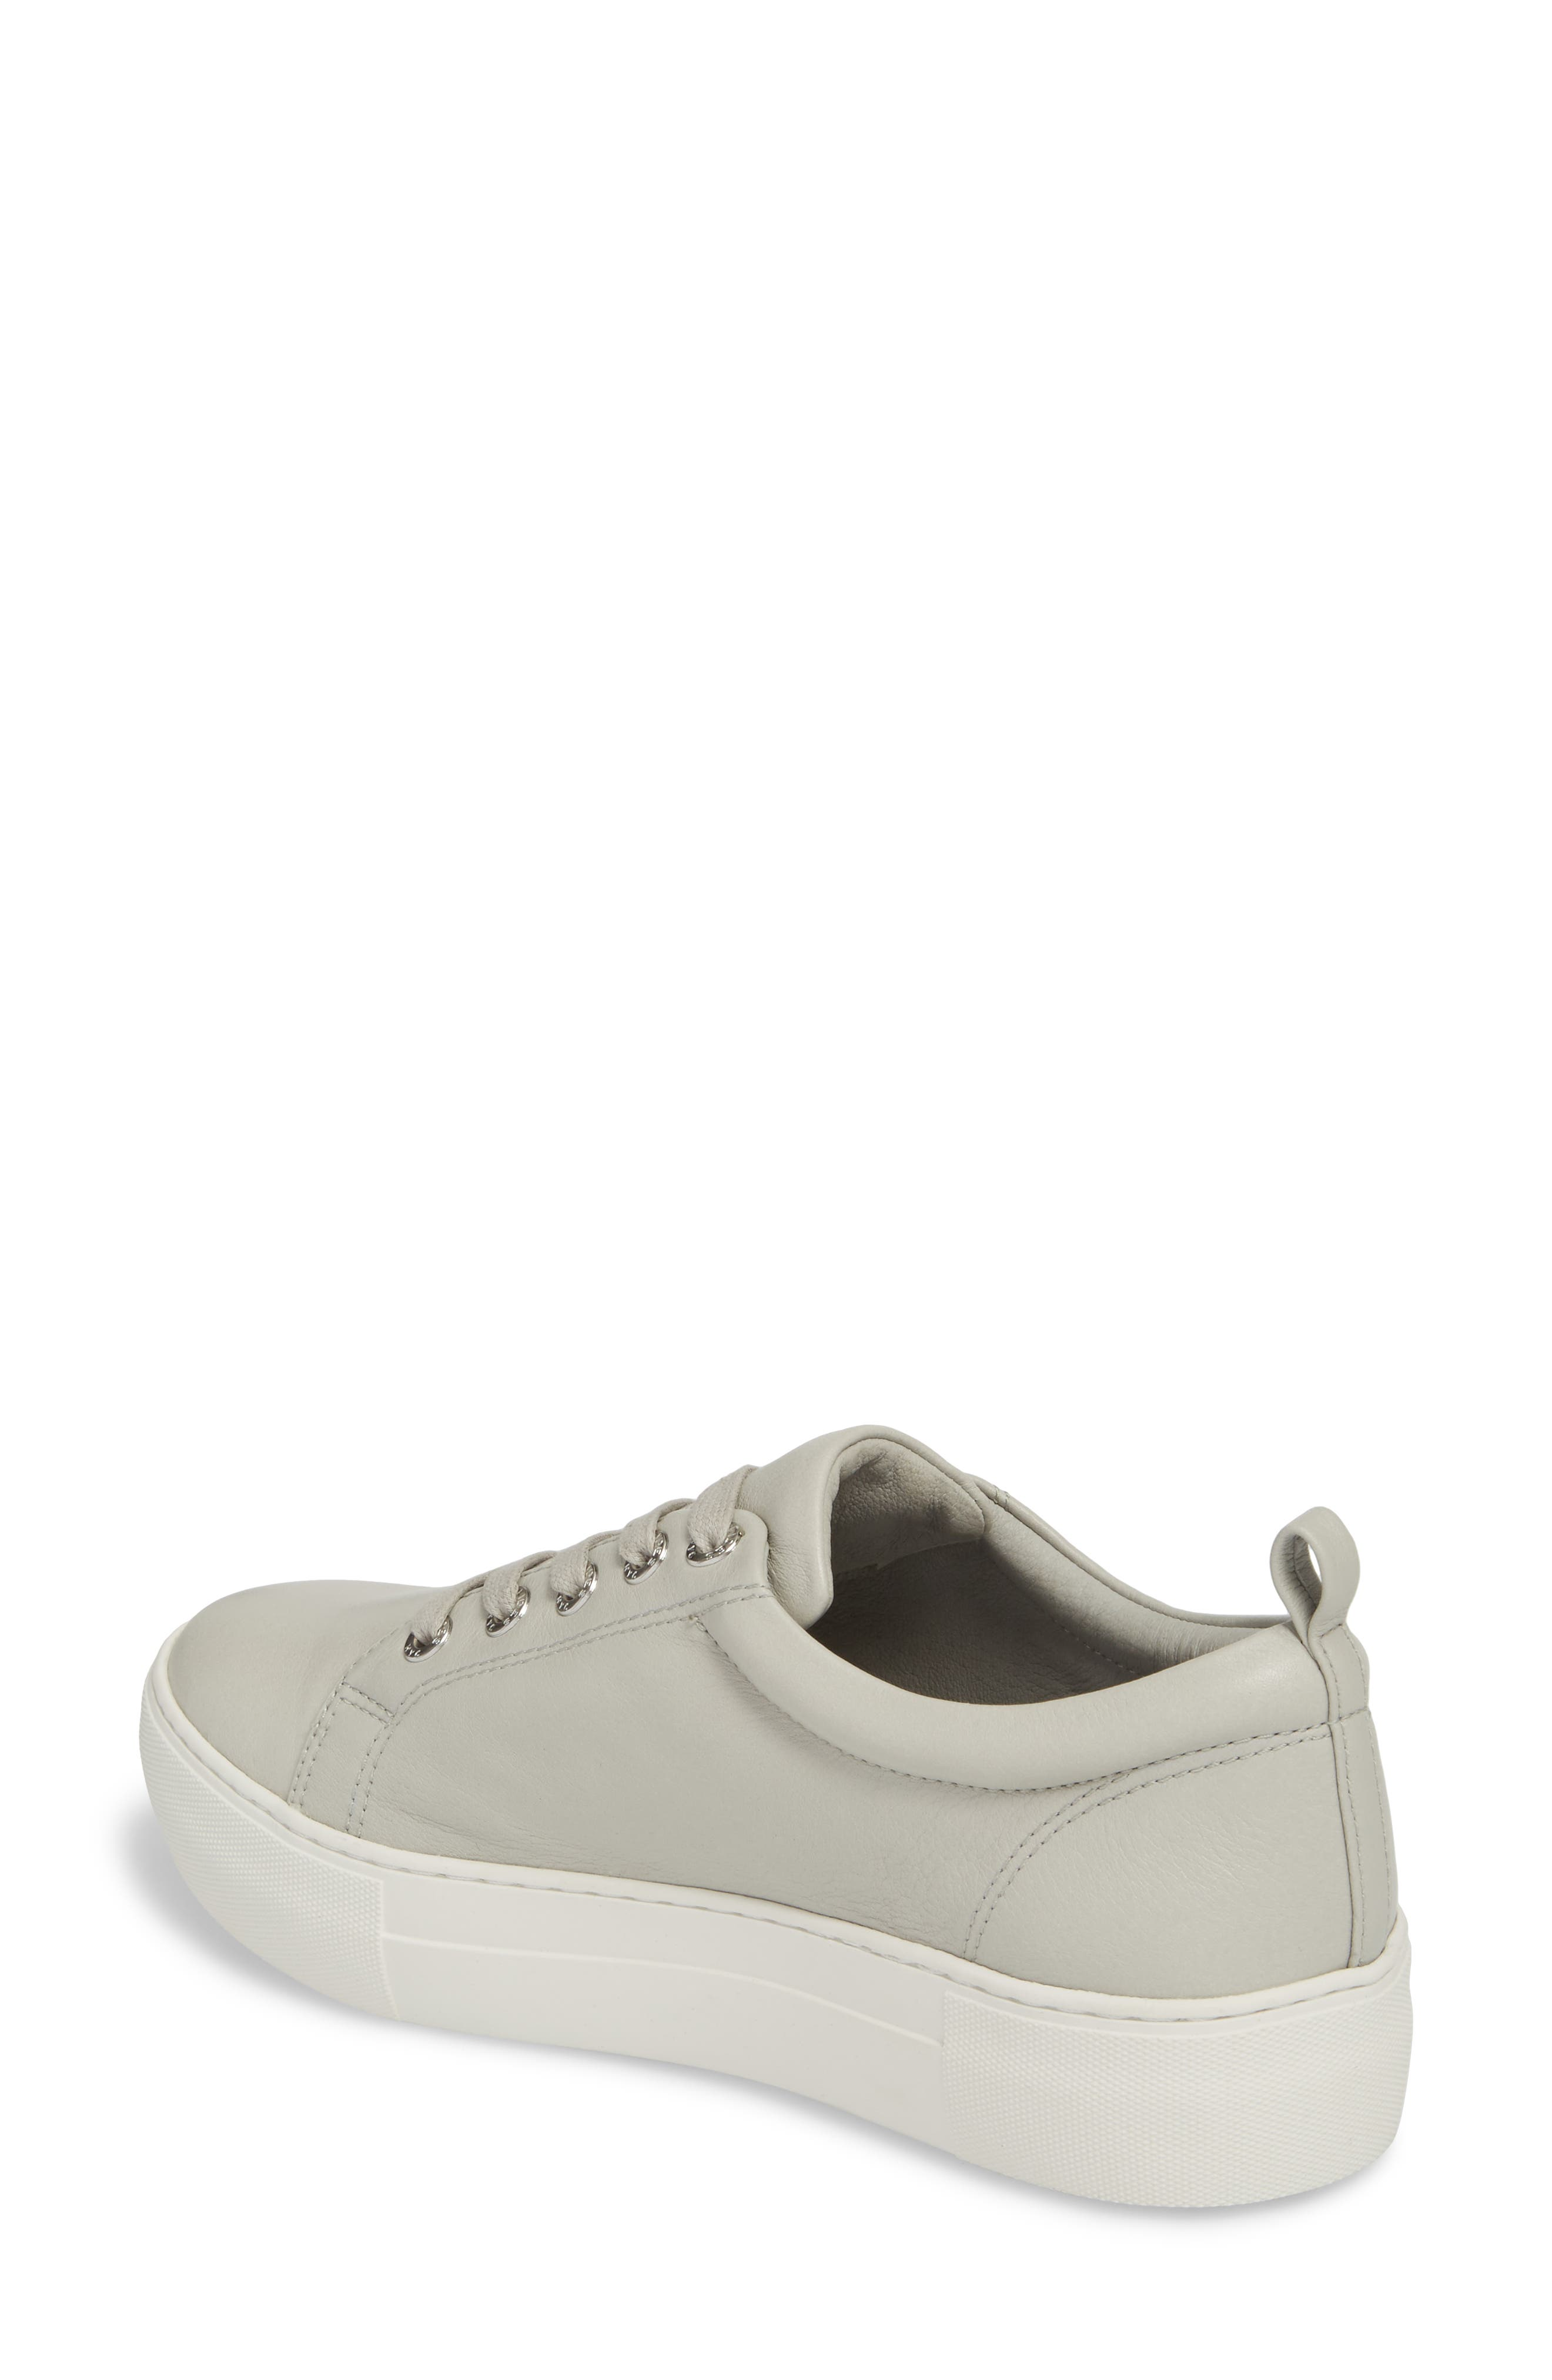 Adel Floral Sneaker,                             Alternate thumbnail 4, color,